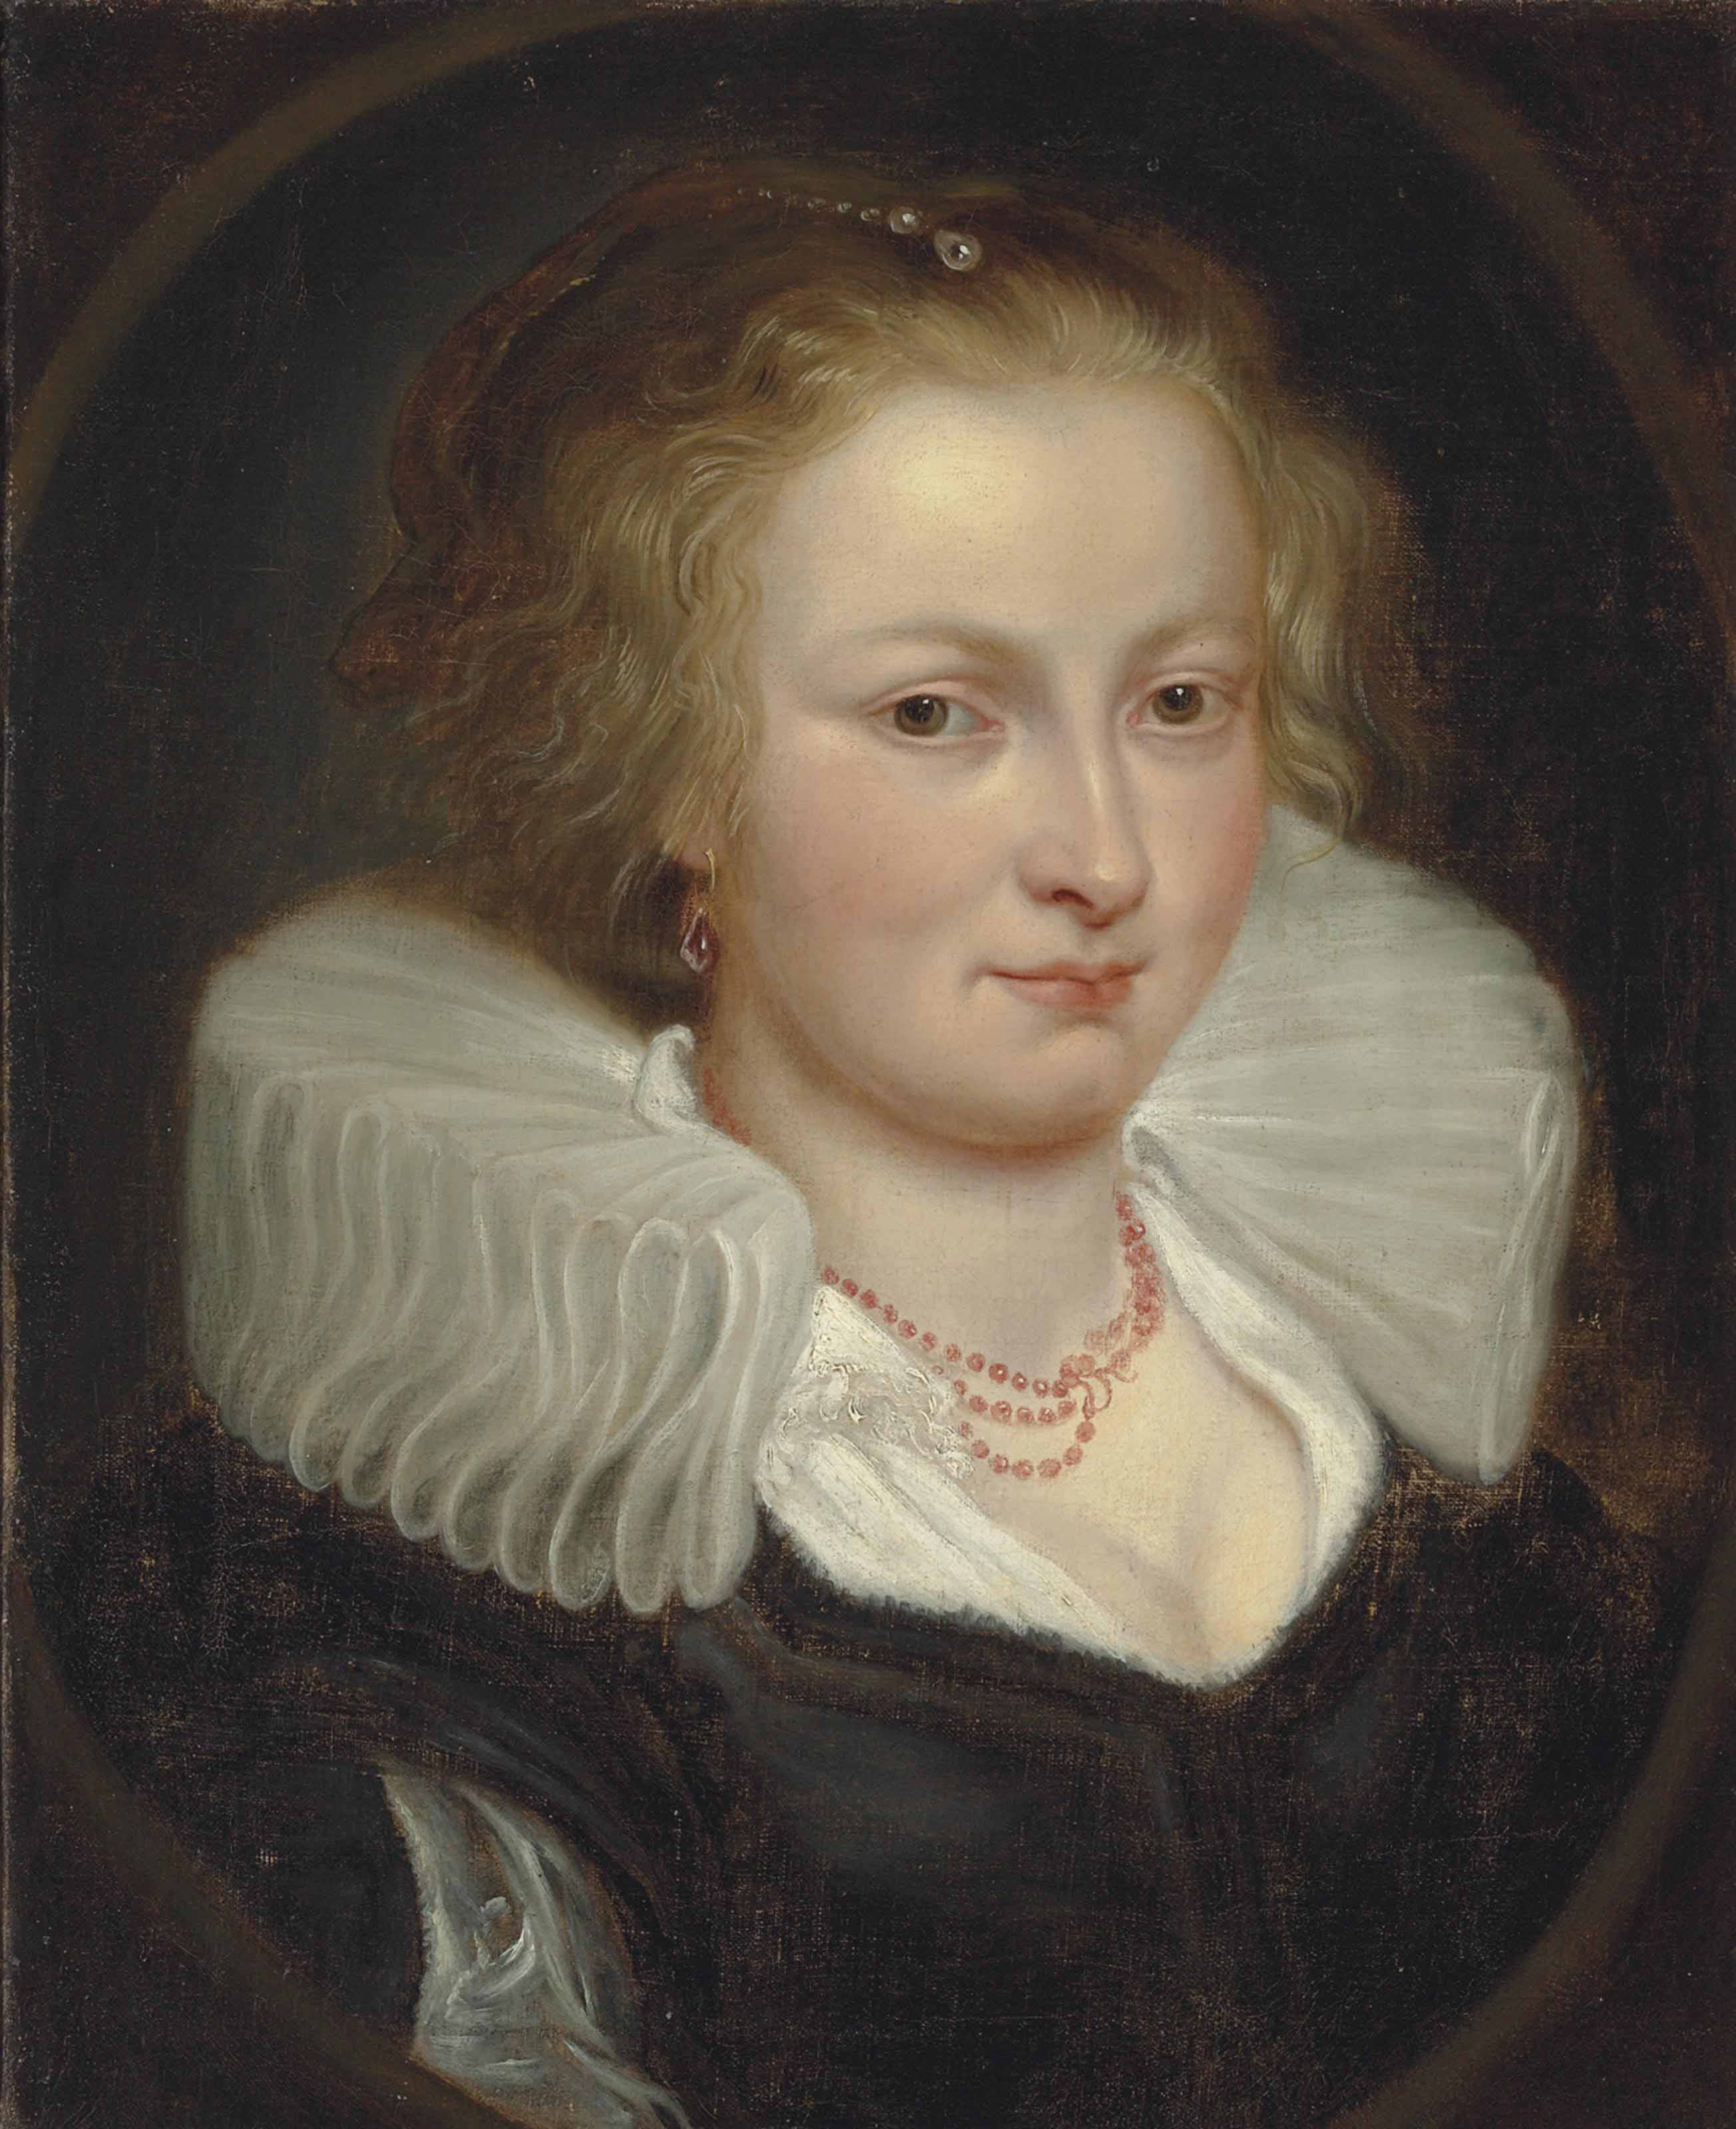 Portrait of a woman, bust length, in a black dress, with a white ruff and coral necklace, in a feigned oval